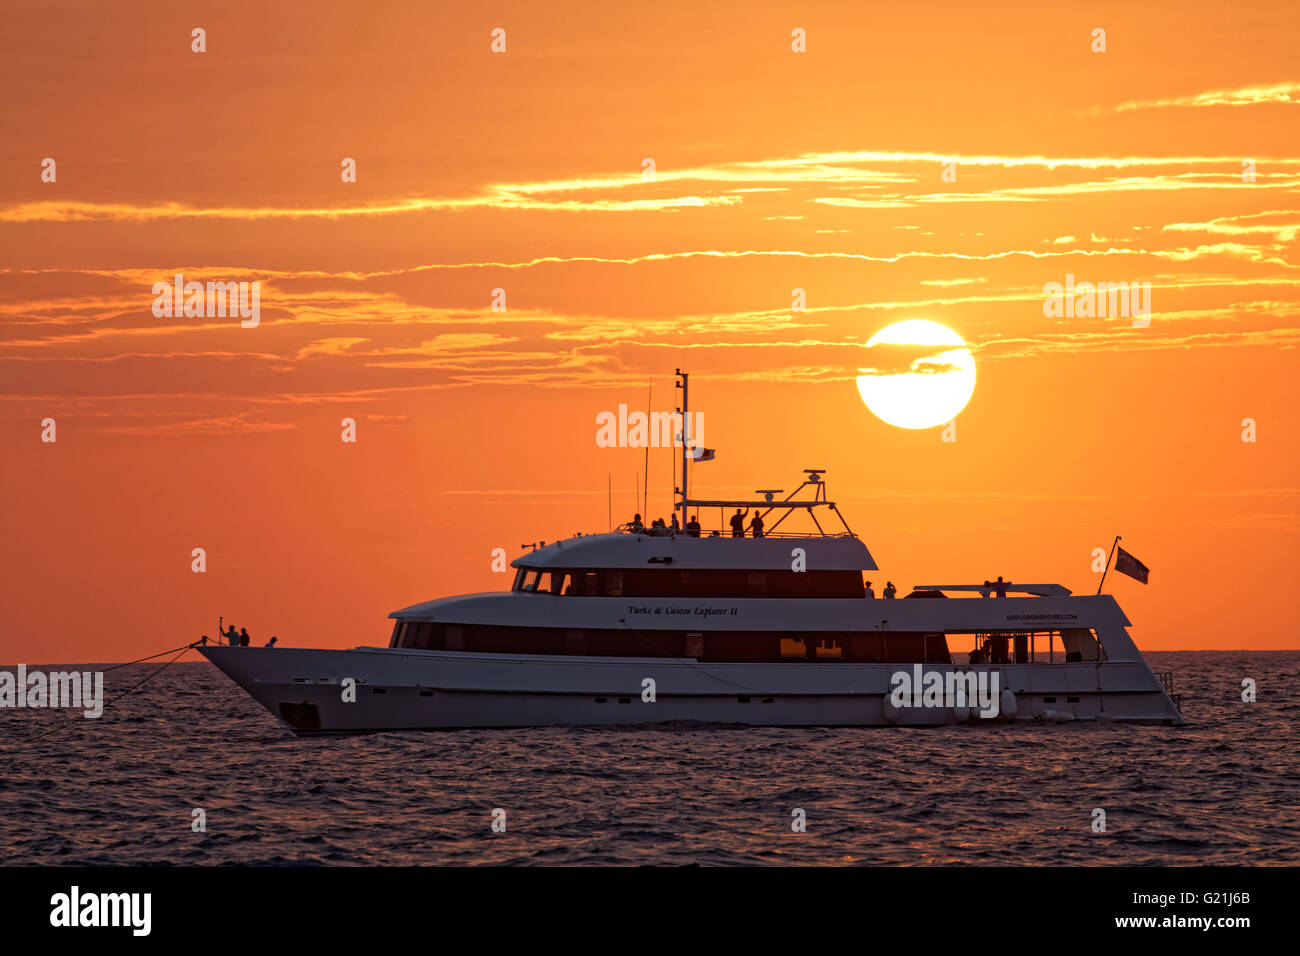 Whale watching and diving ship Turks & Caicos Explorer II, sunset, Silver Bank, Silver and Navidad Bank Sanctuary - Stock Image